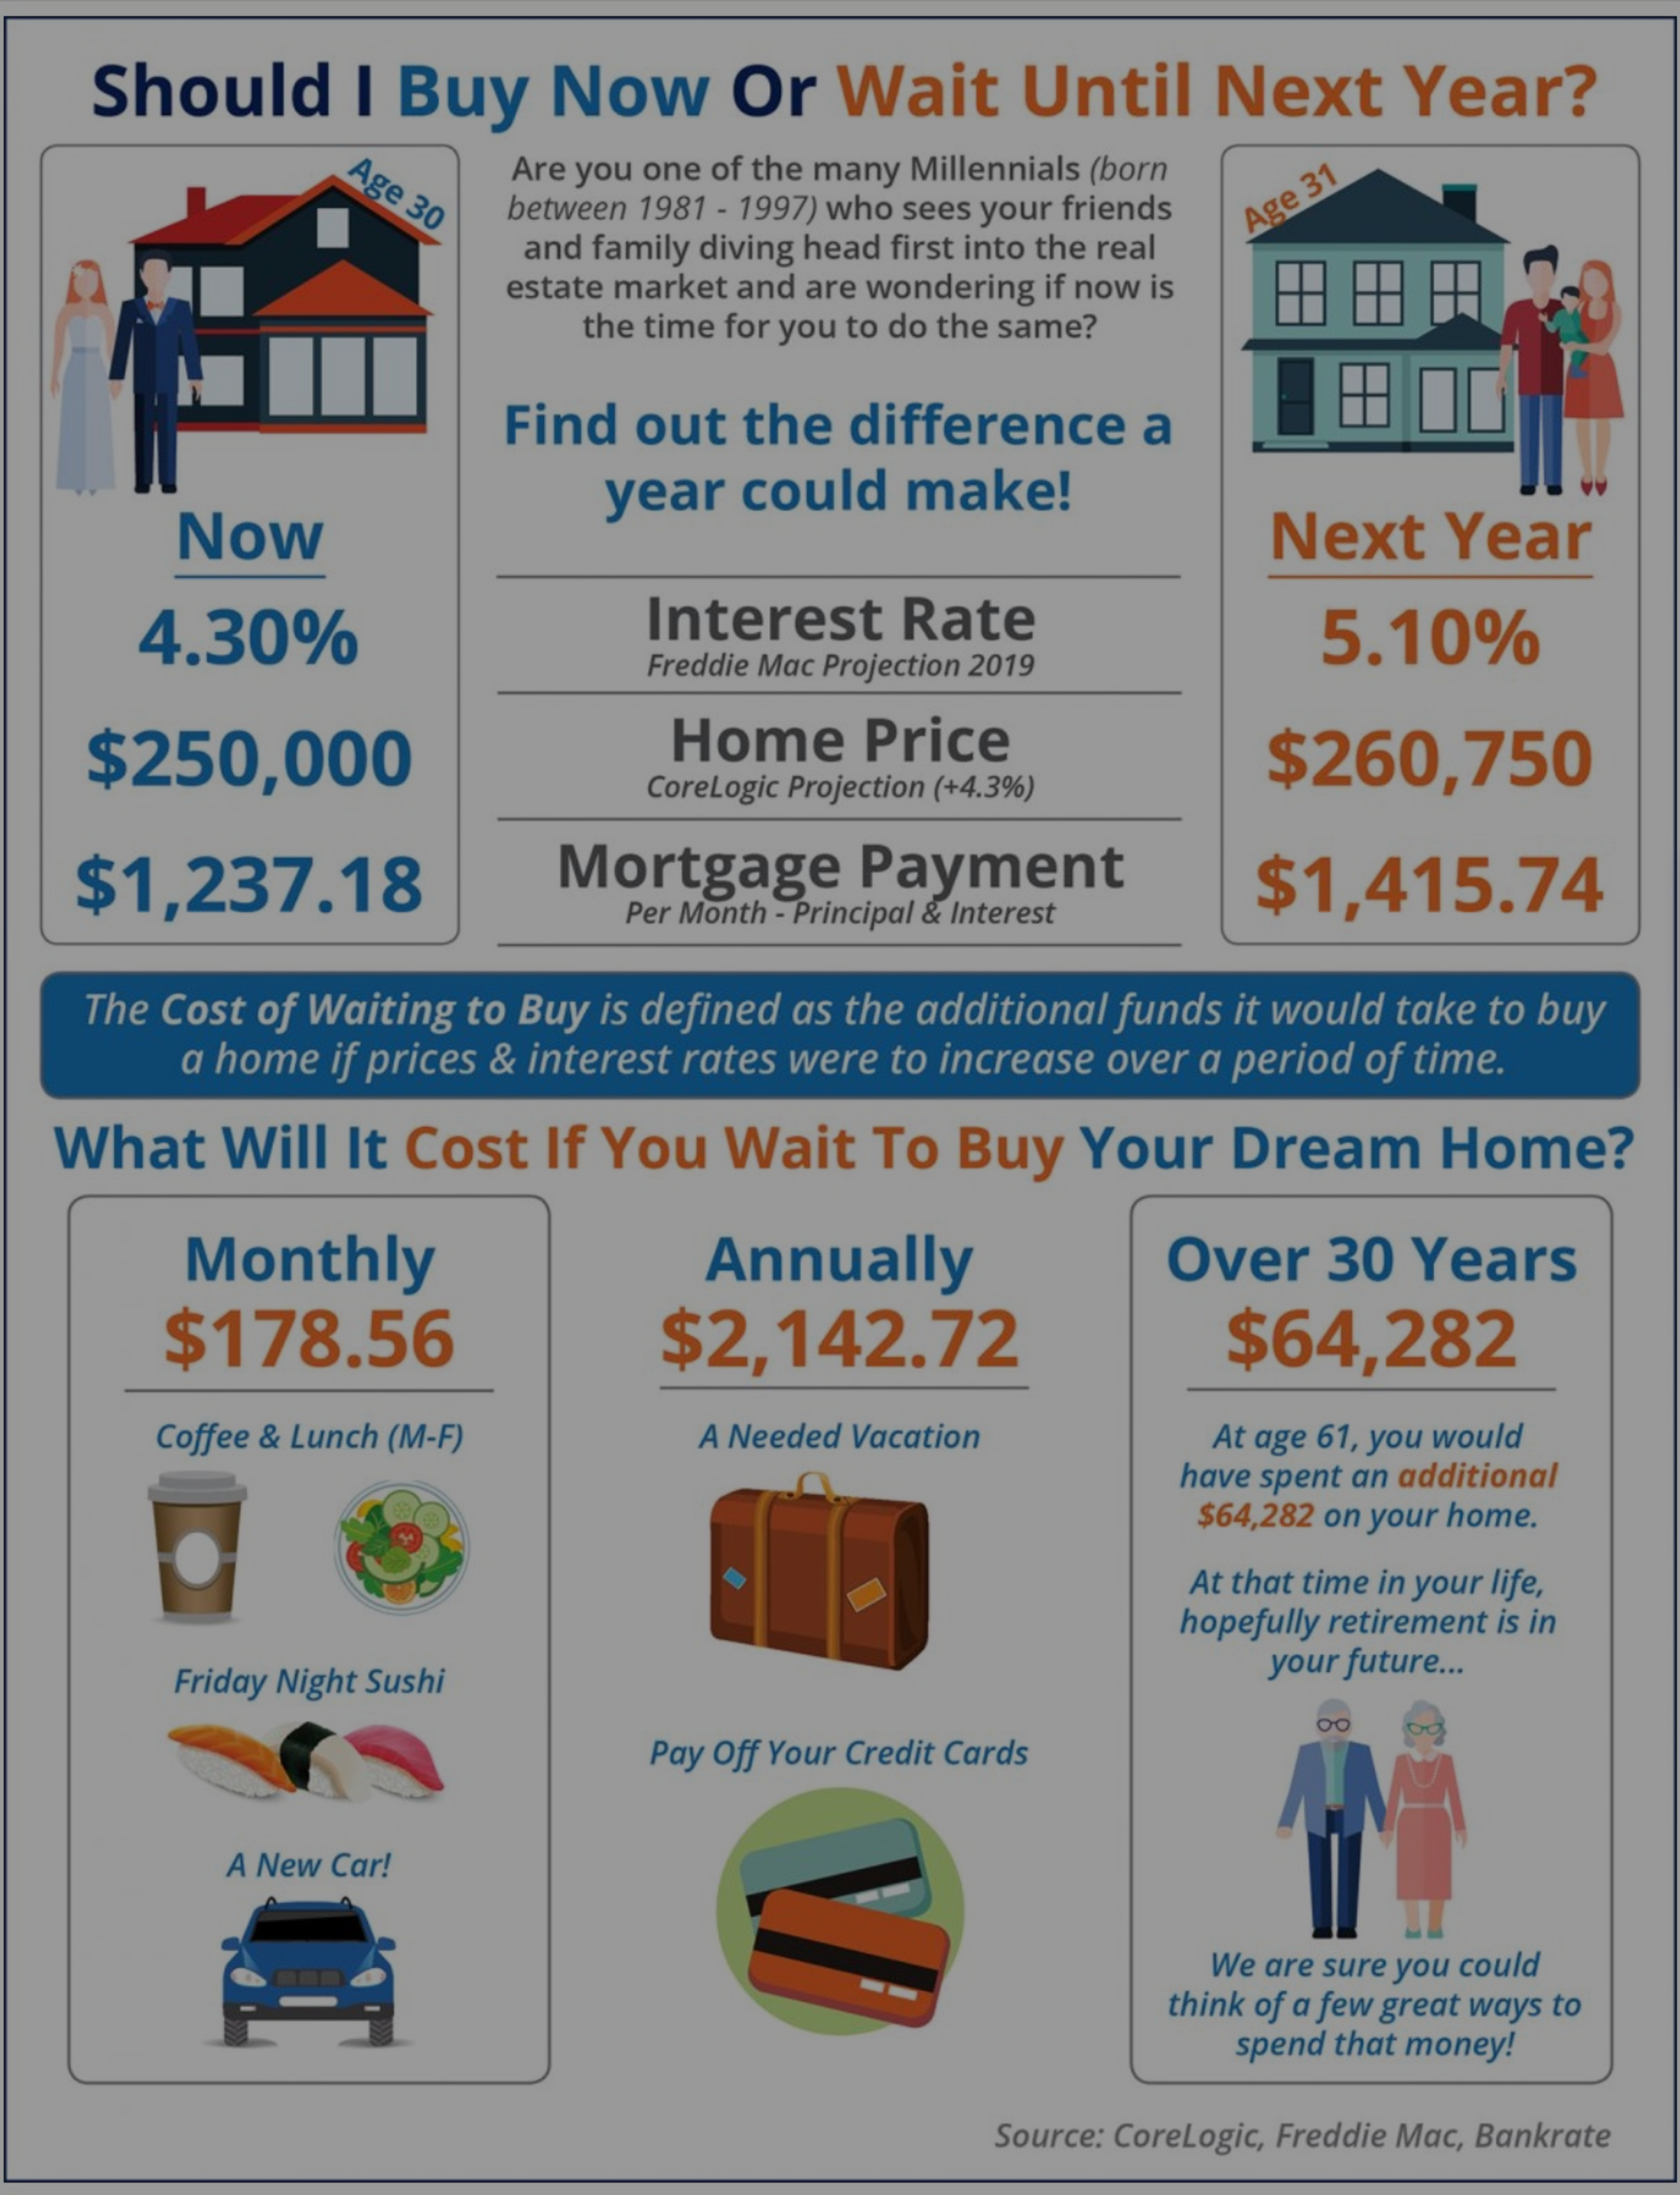 Should You Wait a Year to Buy a Home?